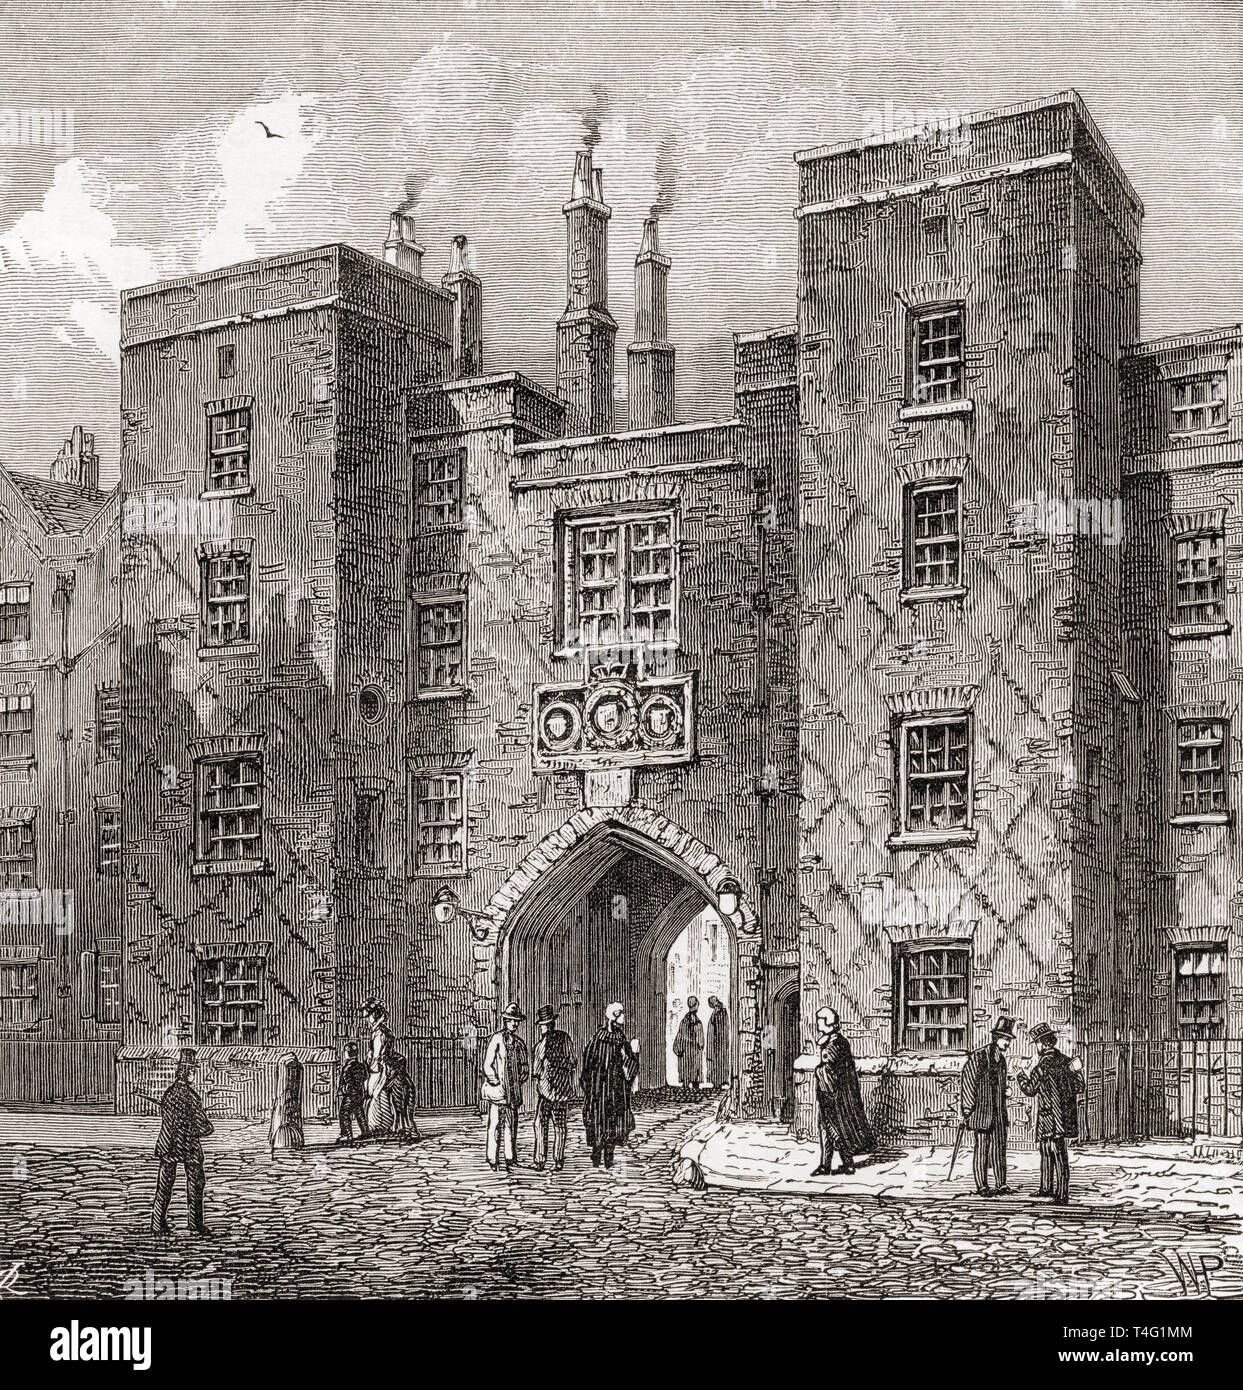 The Chancery Lane Gate of Lincoln's Inn, London, England, seen here in the 19th century.  From London Pictures, published 1890 - Stock Image